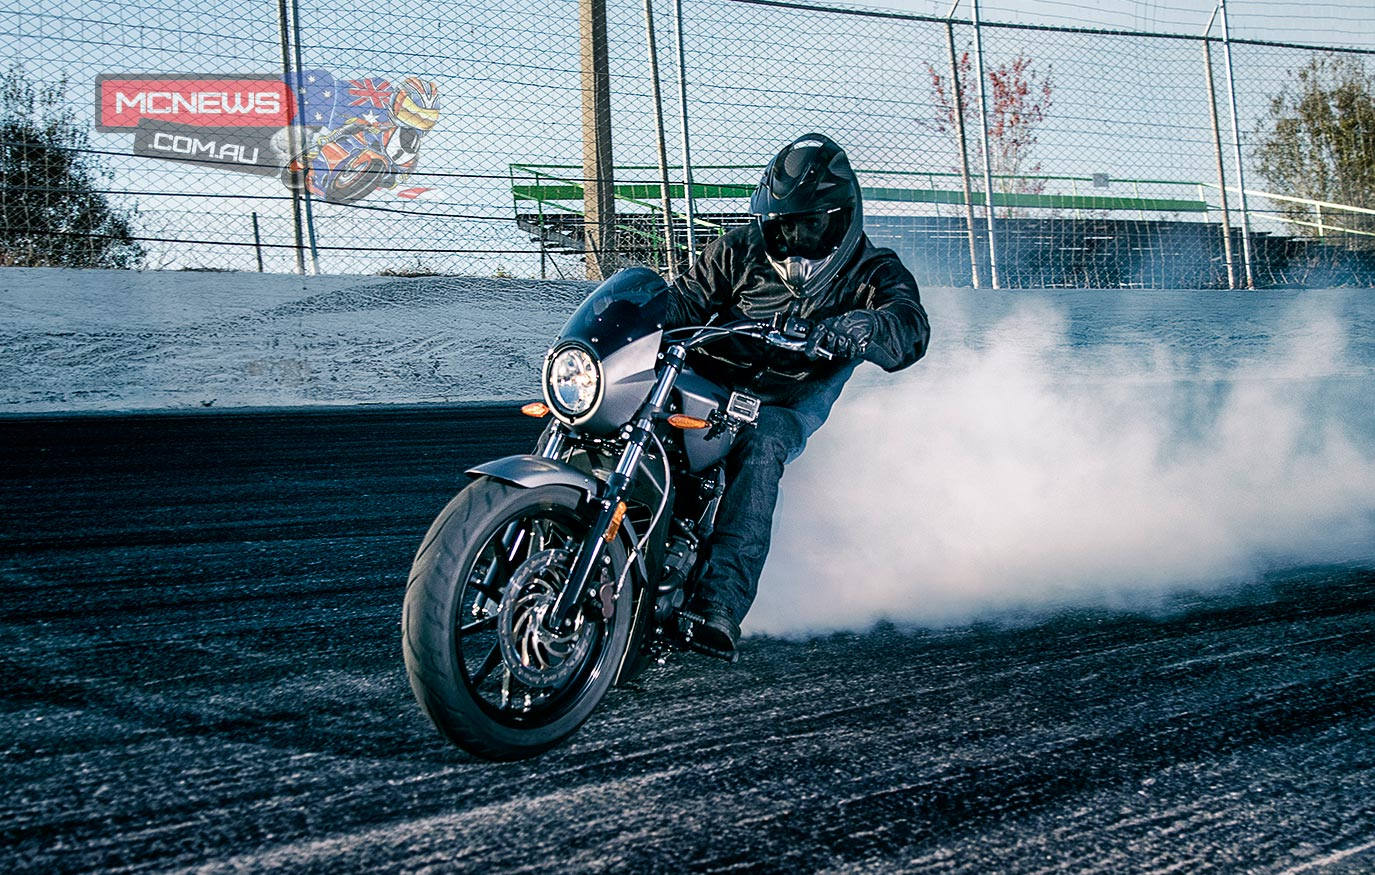 Guinness World Record with 3.58km burnout on the new Victory Octane